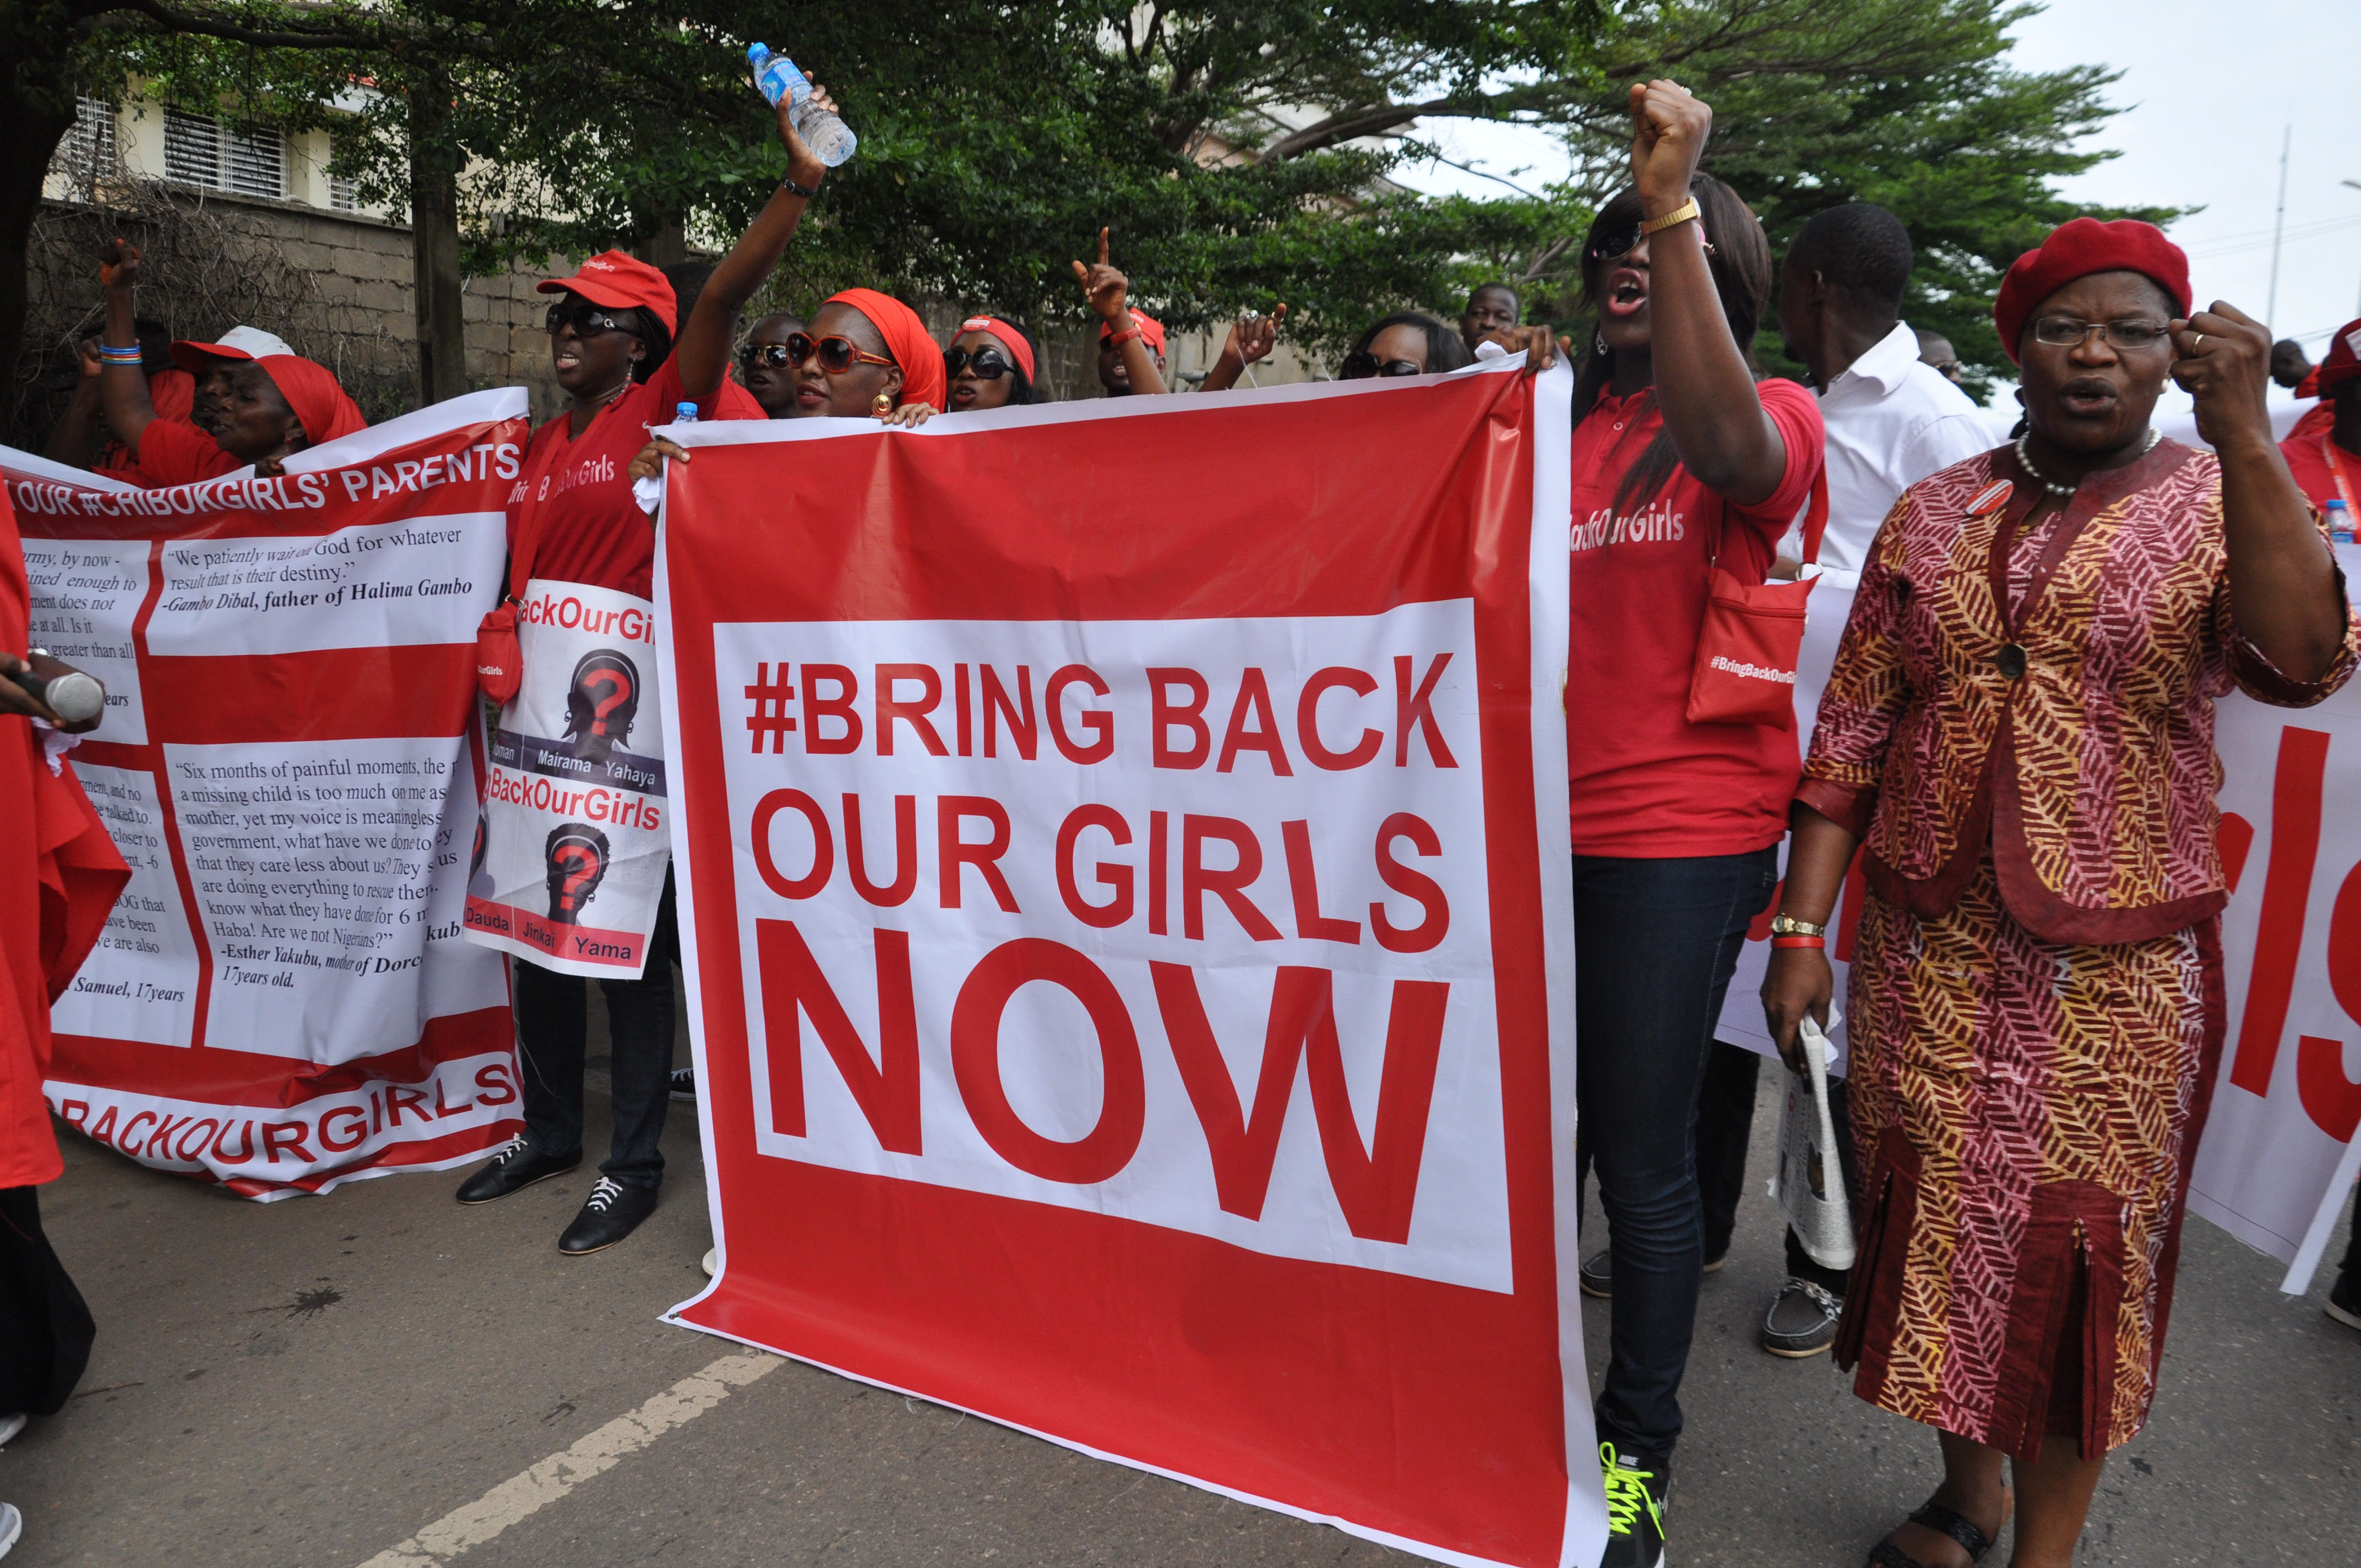 """People attend a demonstration calling on the government to rescue the kidnapped girls of the government secondary school in Chibok, in Abuja, Nigeria, Tuesday, Oct. 14, 2014. Scores of protesters marched chanting """"Bring Back Our Girls"""" kidnapped six months ago by Boko Haram . (AP Photo/ Olamikan Gbemiga)"""